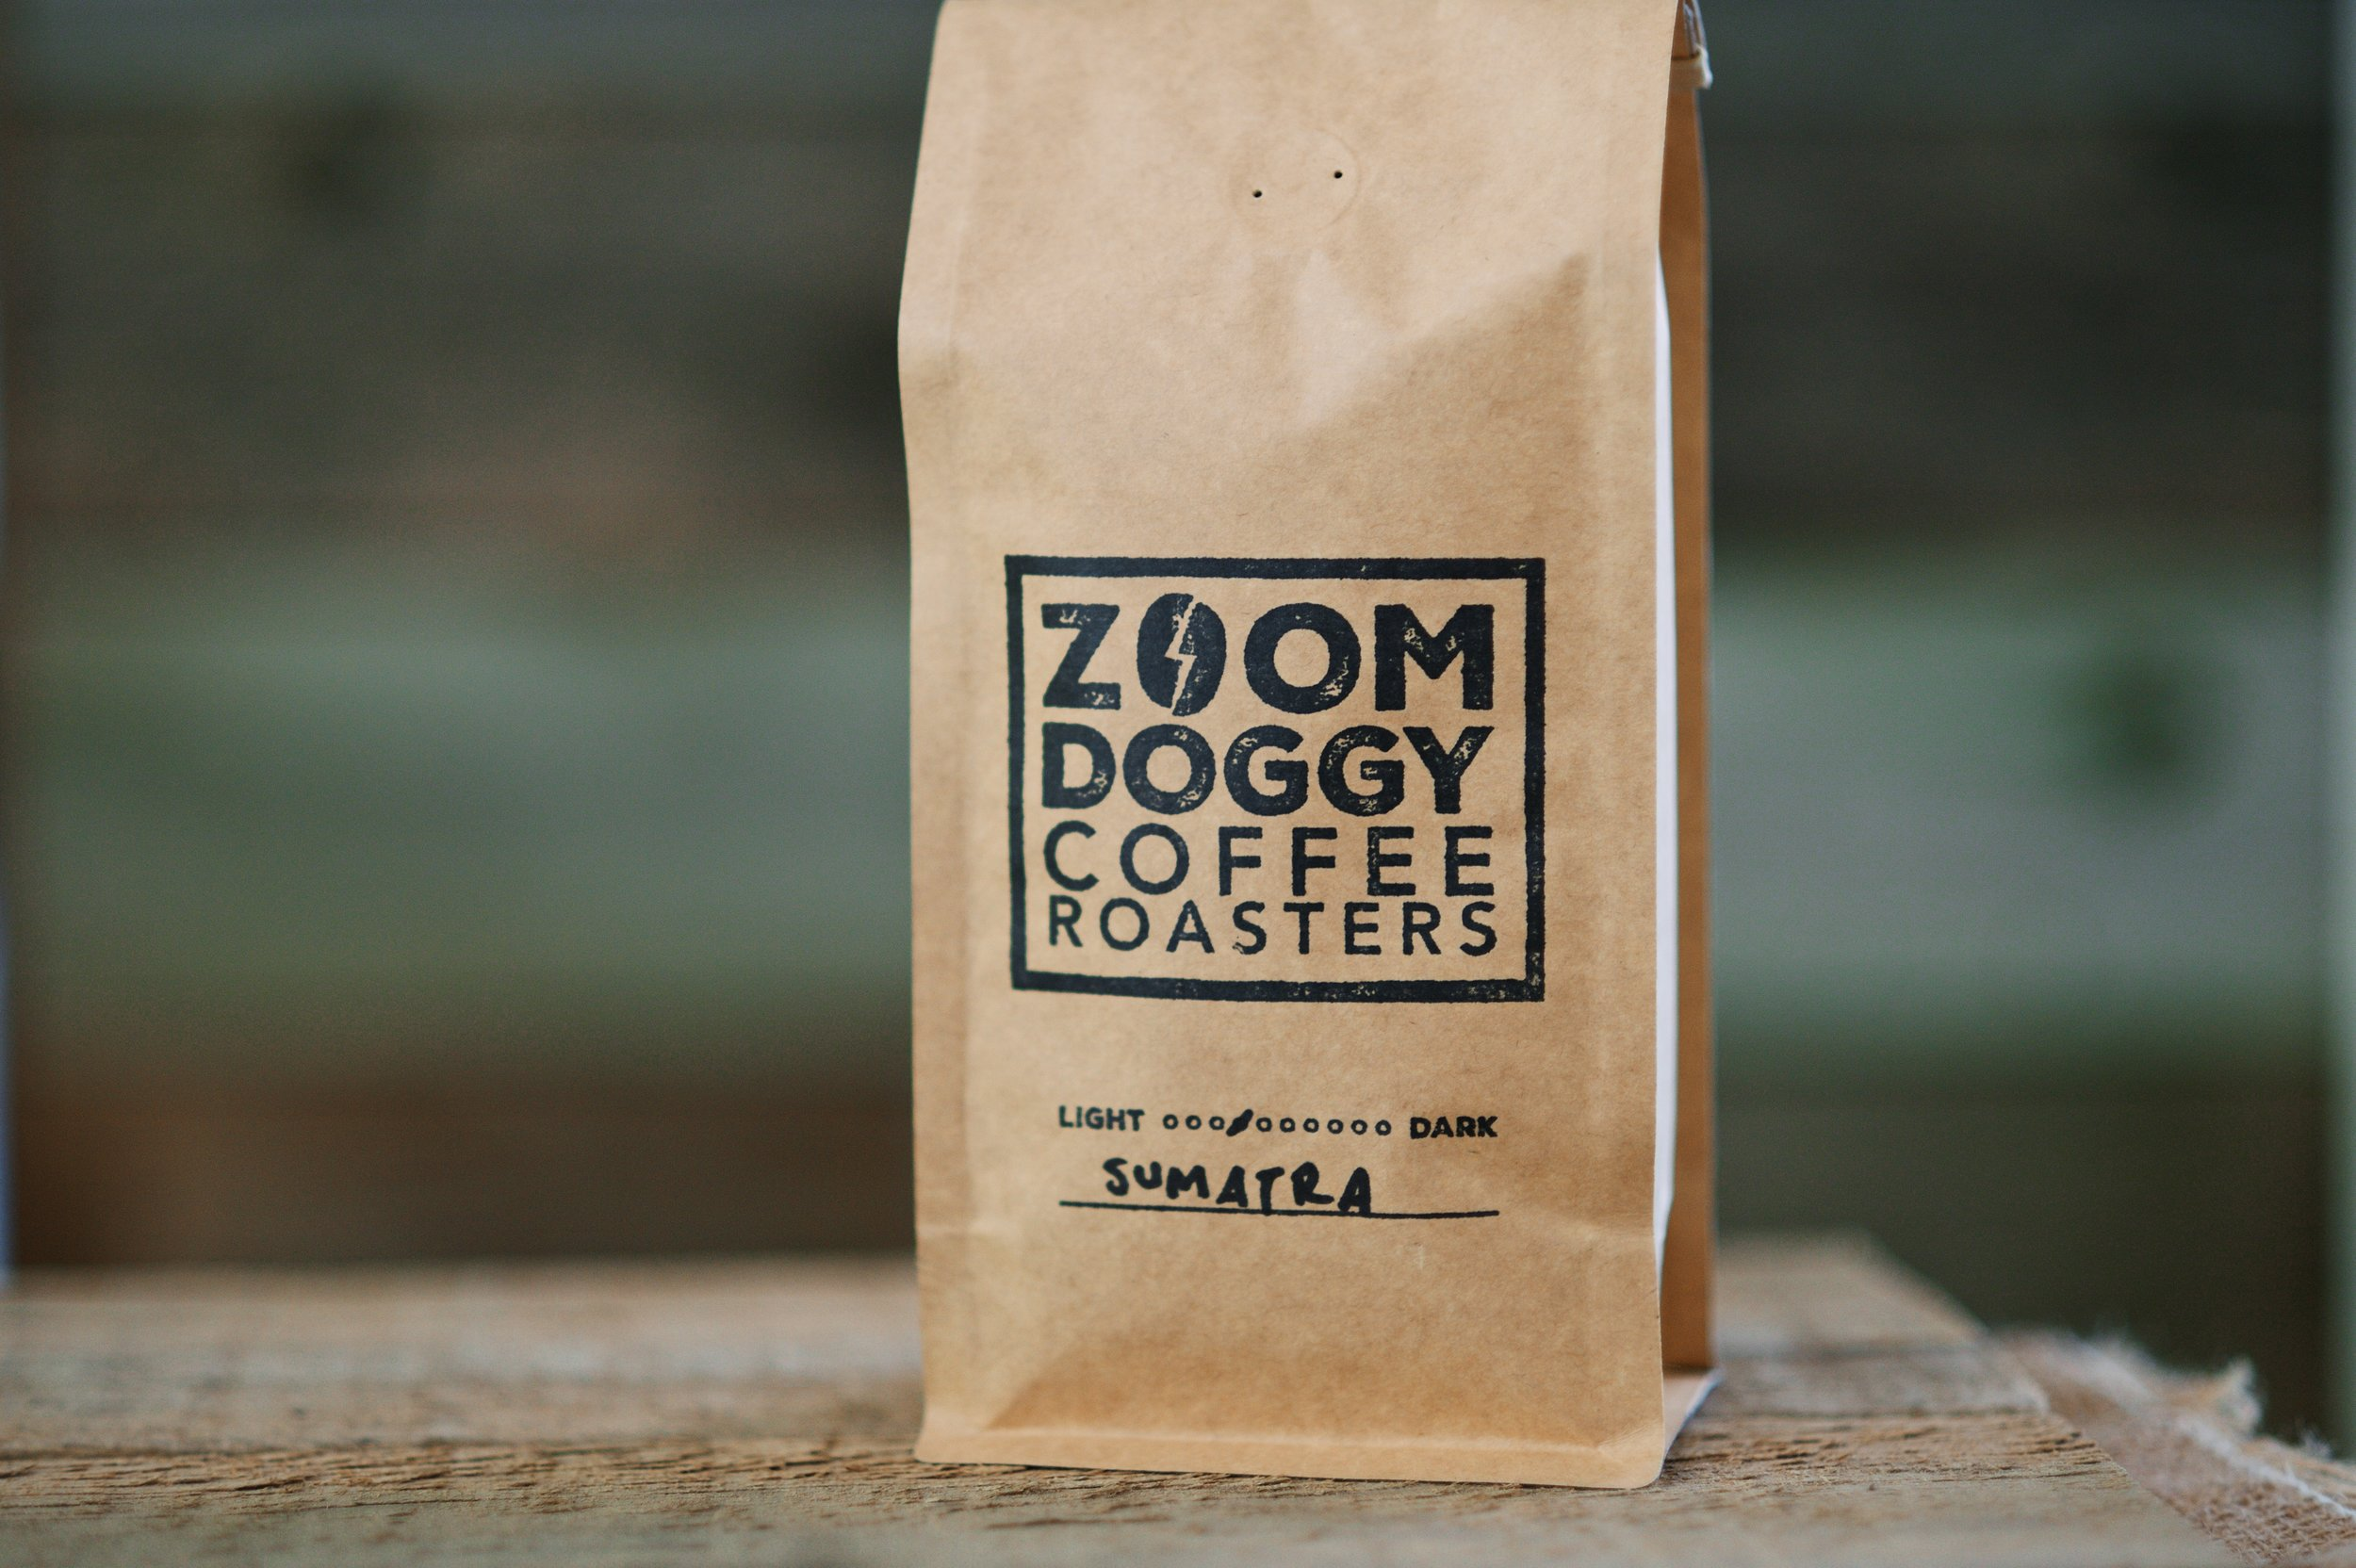 Zoom Doggy Coffee, Specialty Coffee Roasters, Small Batch Coffee, Artisan Coffee Brands, Online Farmers Market, Fair Trade Coffee